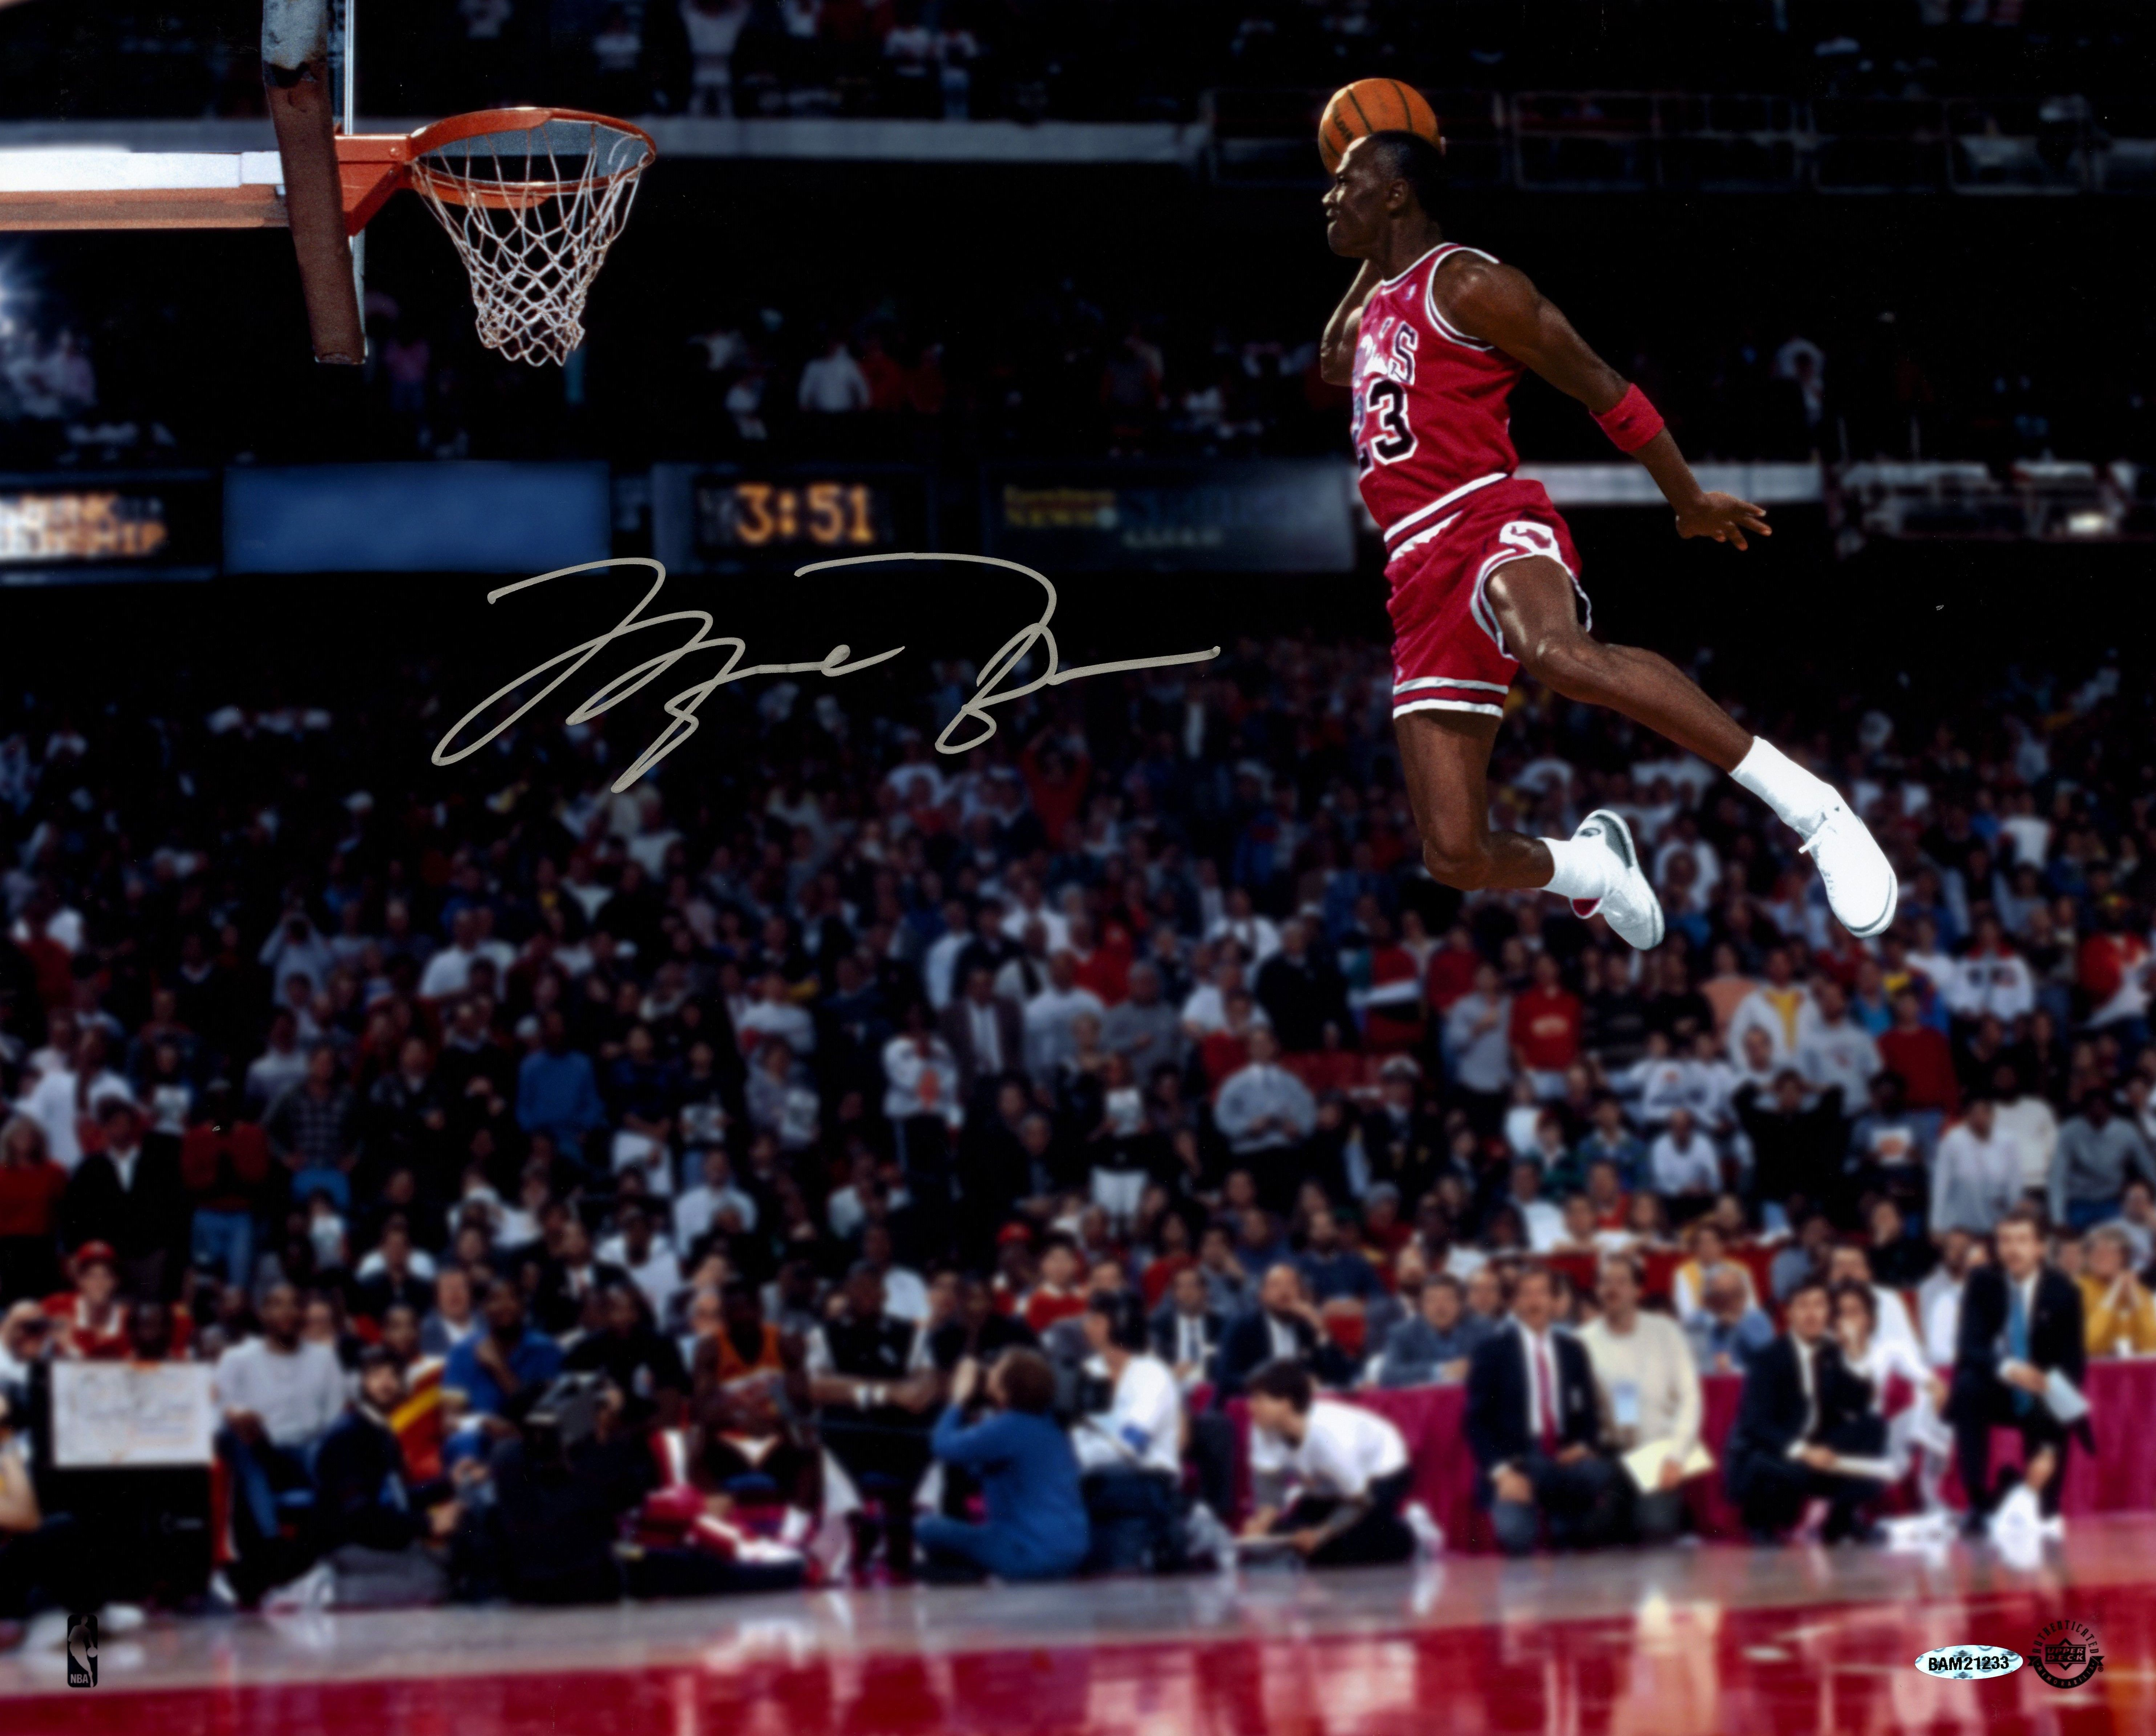 Michael Jordan Dunk Wallpaper On High Resolution Wallpaper  12283ae12ef